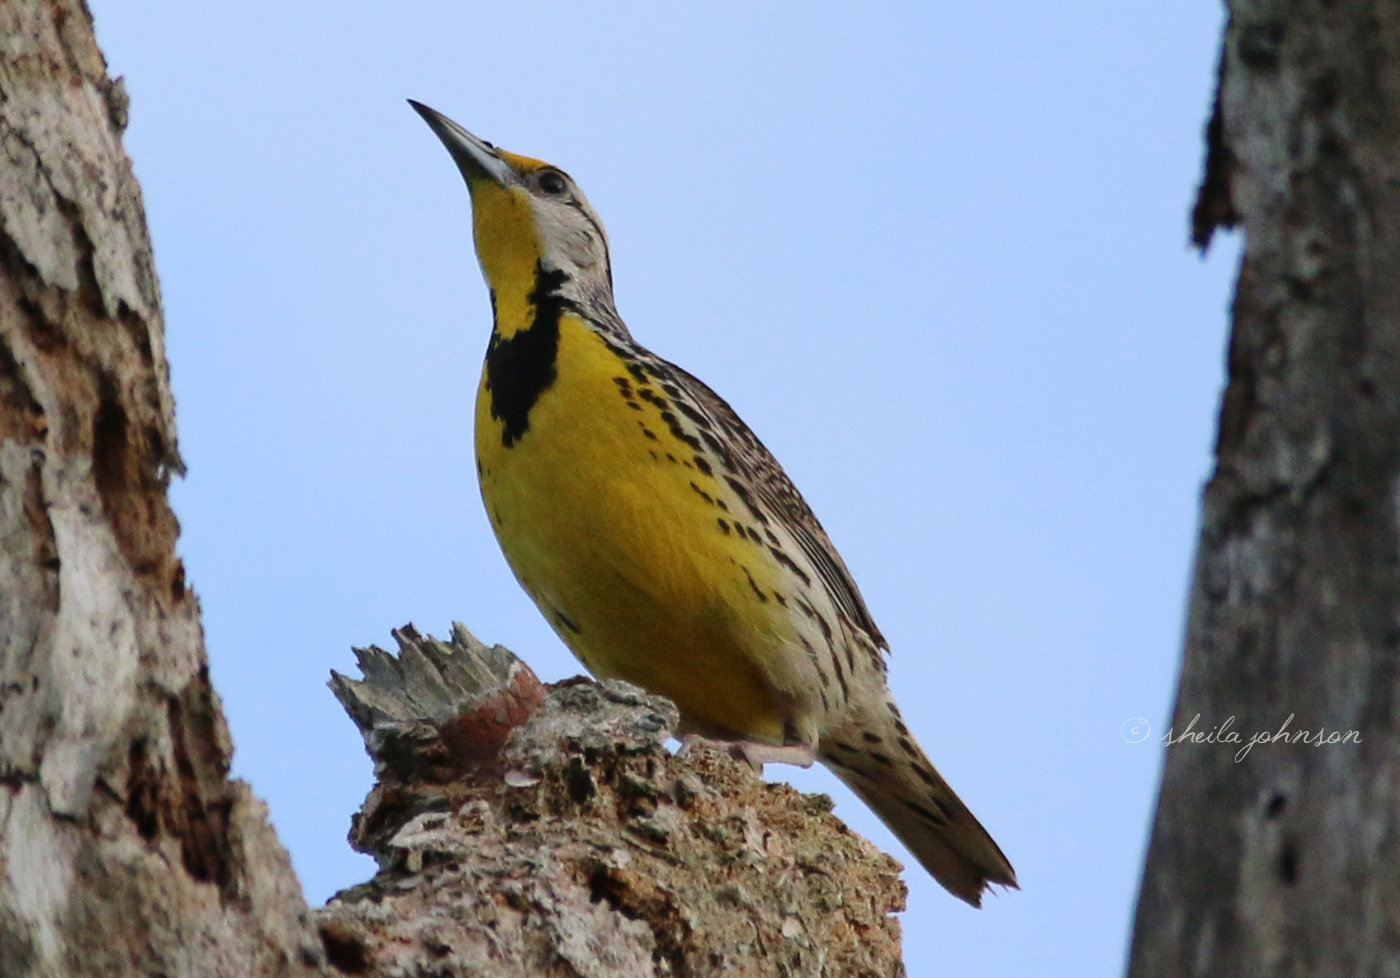 This Yellow Meadowlark Is Visiting A Red-Bellied Woodpecker's Nesting Tree. He Won't Last Long Here -- Papa Woodpecker Doesn't Take Kindly To Visitors, While His Wife Is Sitting On Her Egglets.